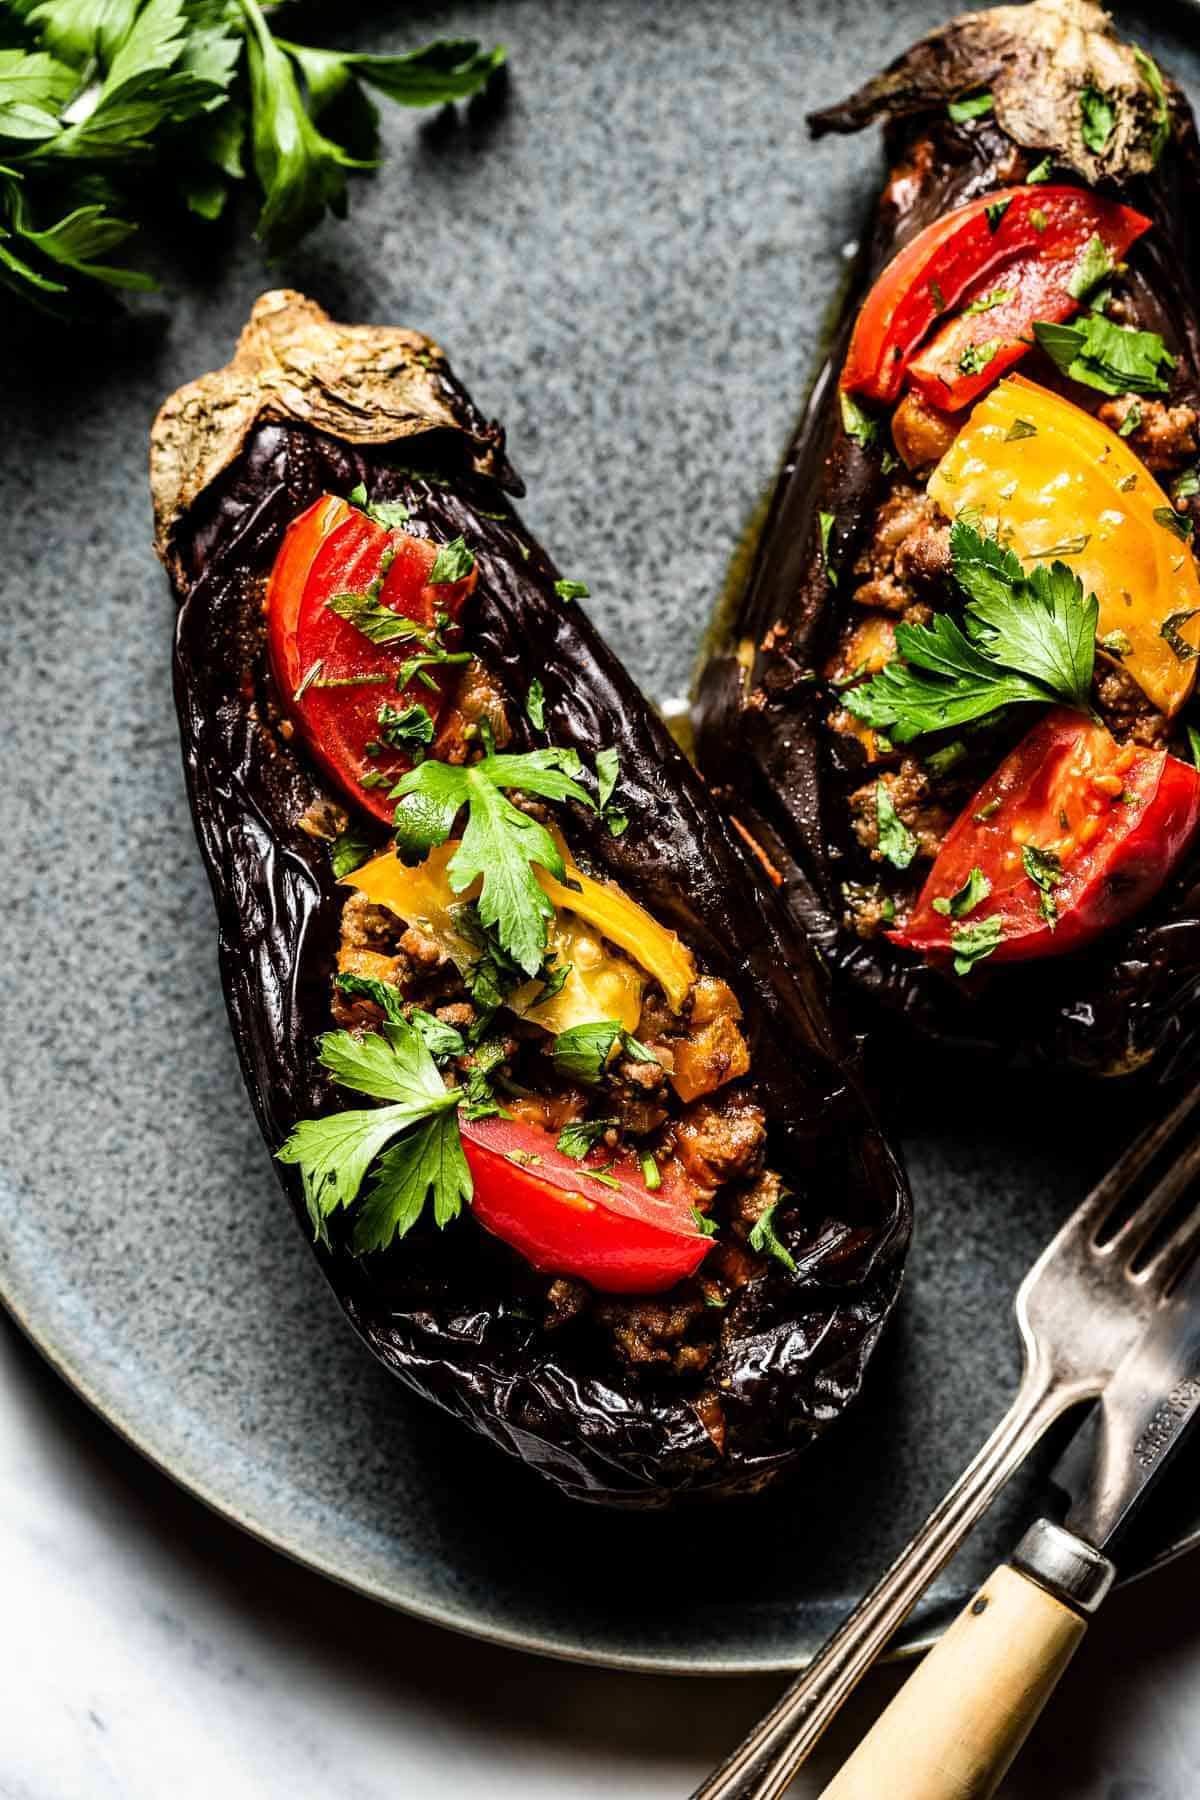 Turkish baked eggplant filled with ground beef served on a plate